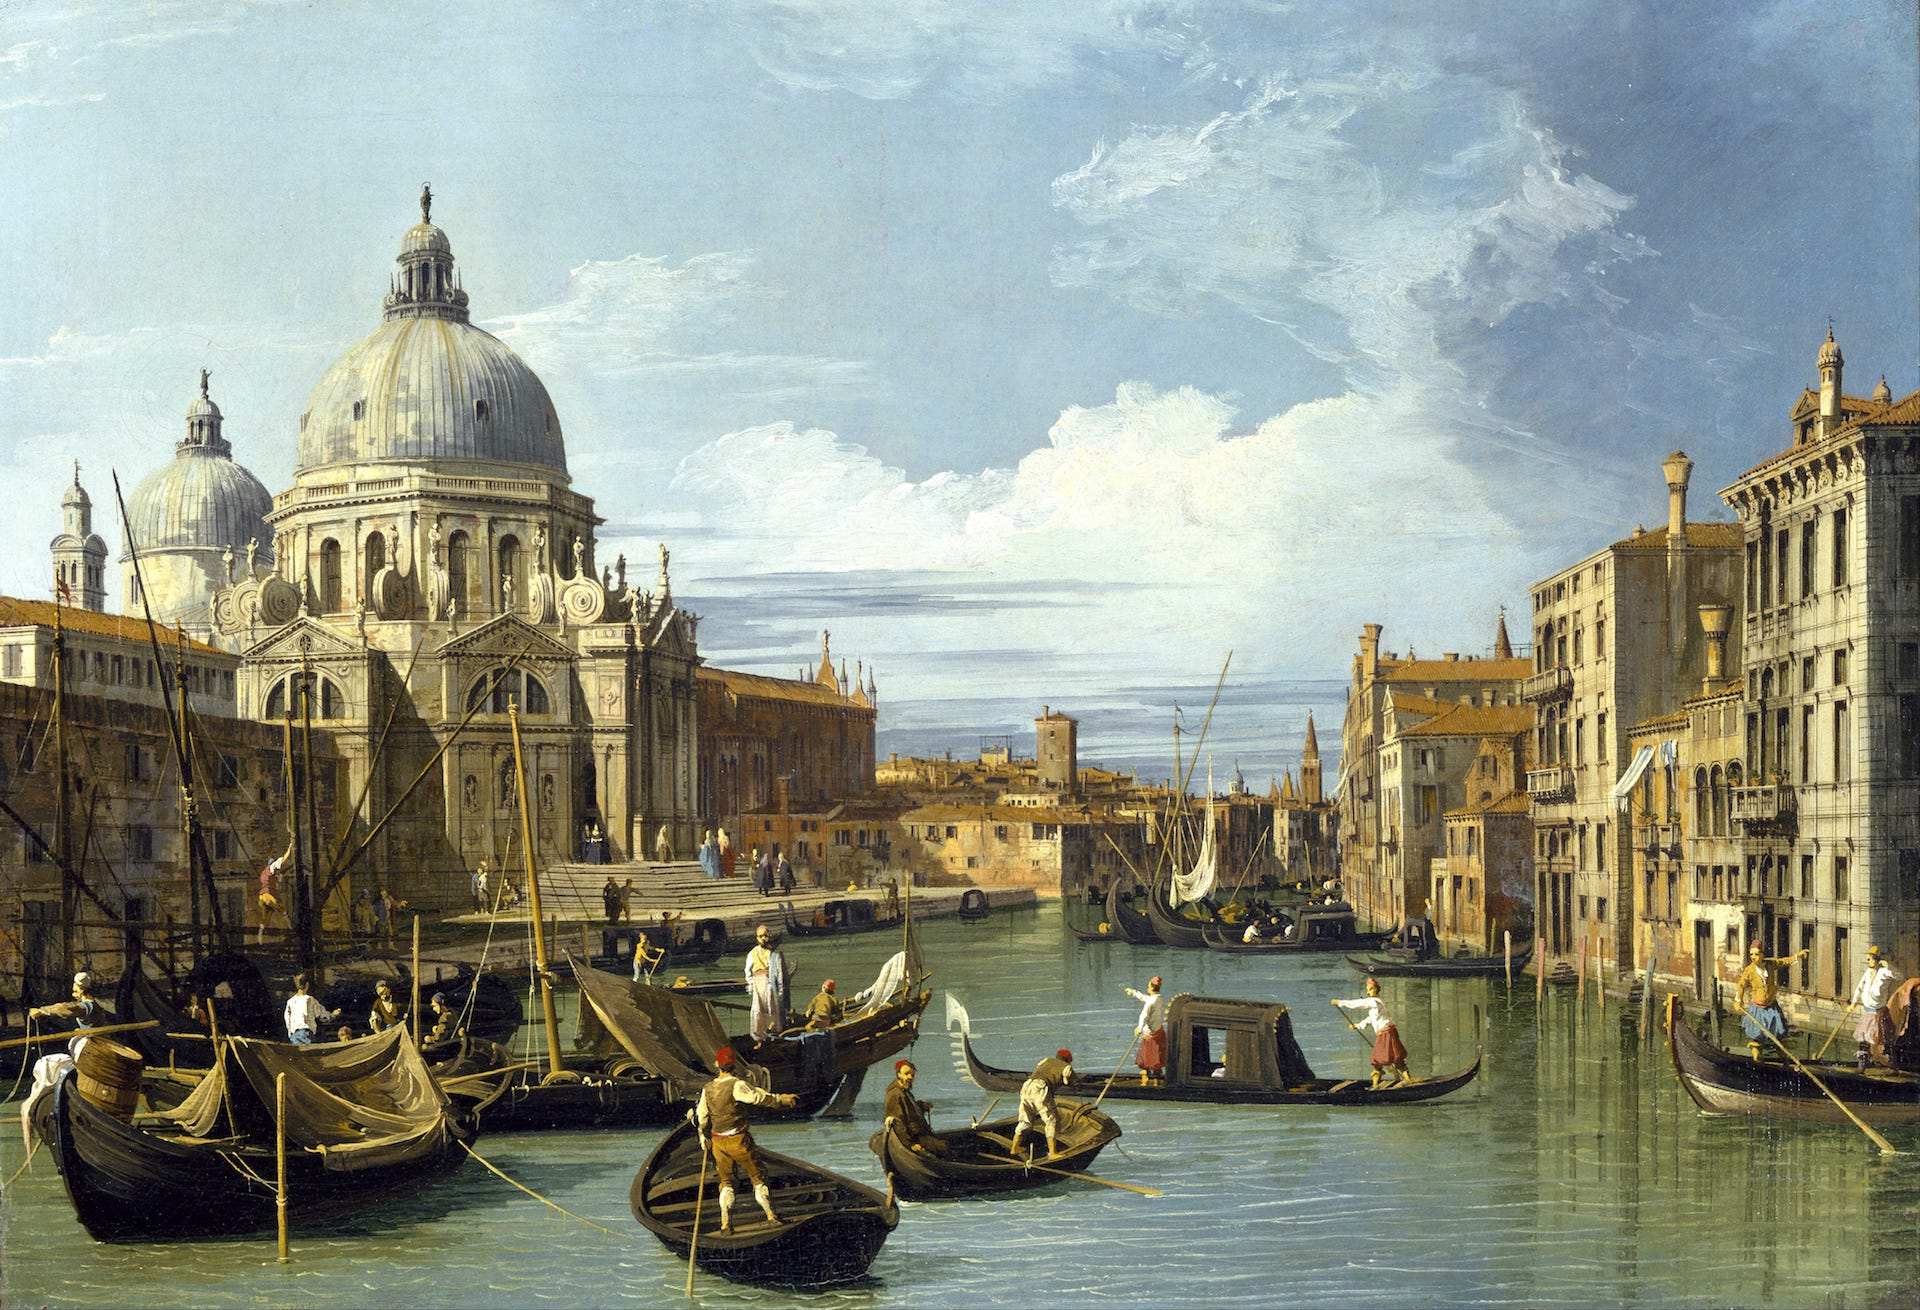 Canaletto,  Entrance to the Grand Canal, Venice.  c. 1730